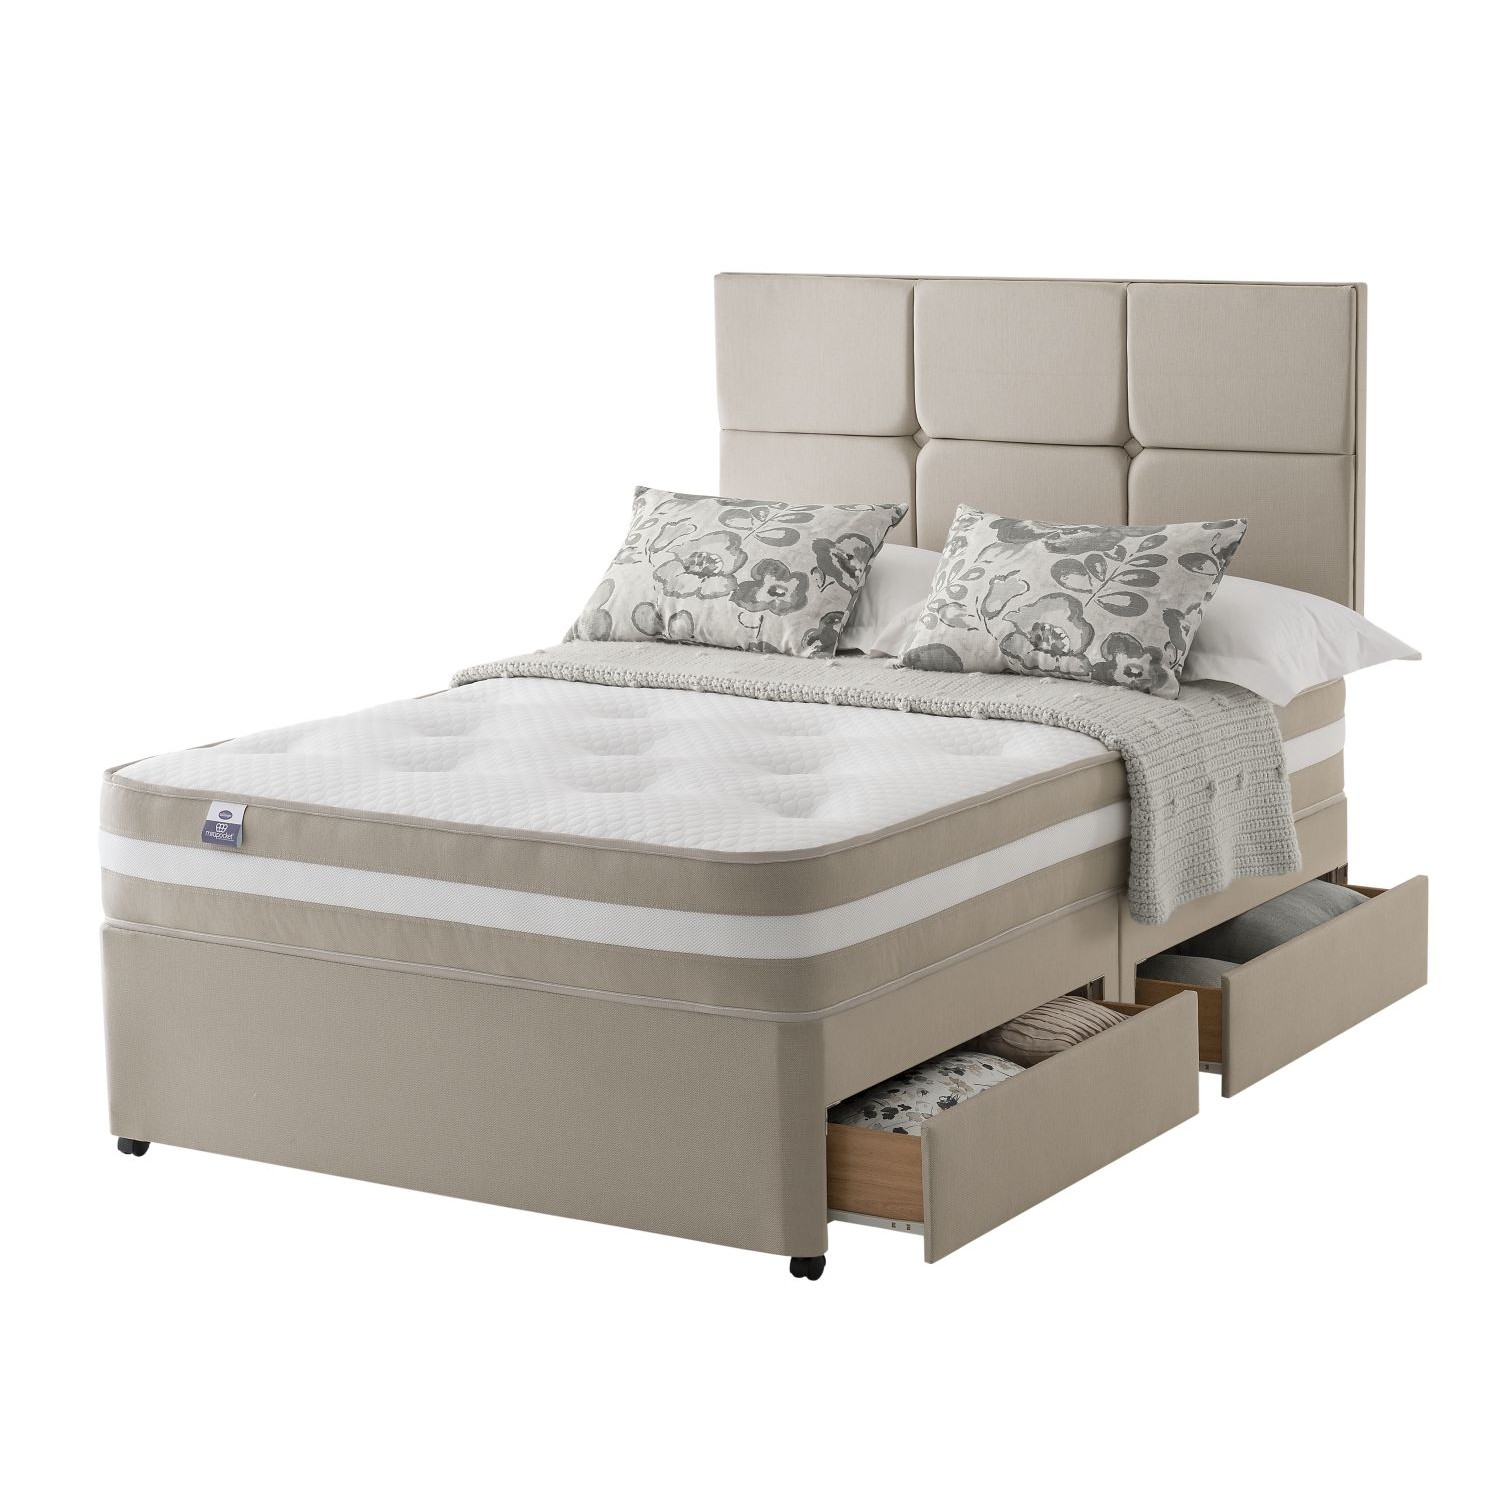 Silentnight georgia platform top 4 drawer divan set double for Silentnight divan